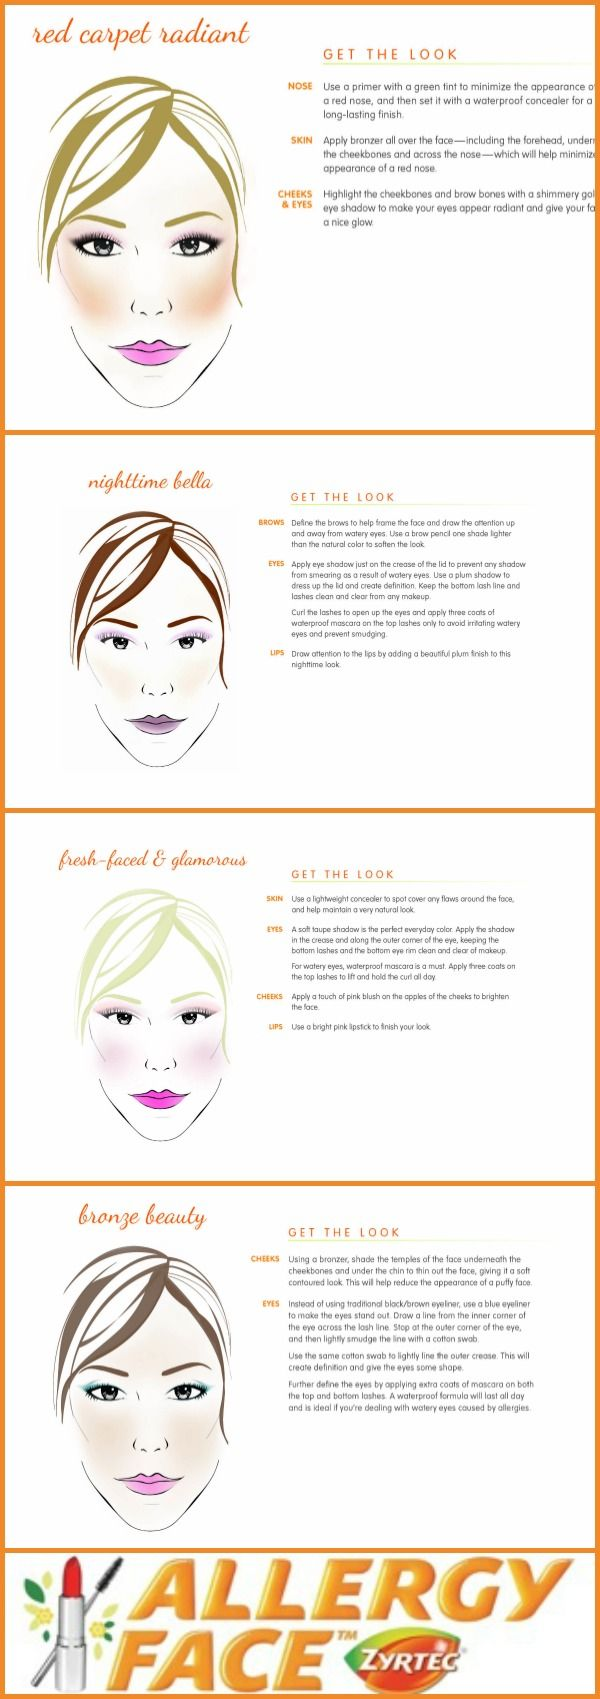 MakeUp Tips for Watery Eyes & Other Allergy Symptoms